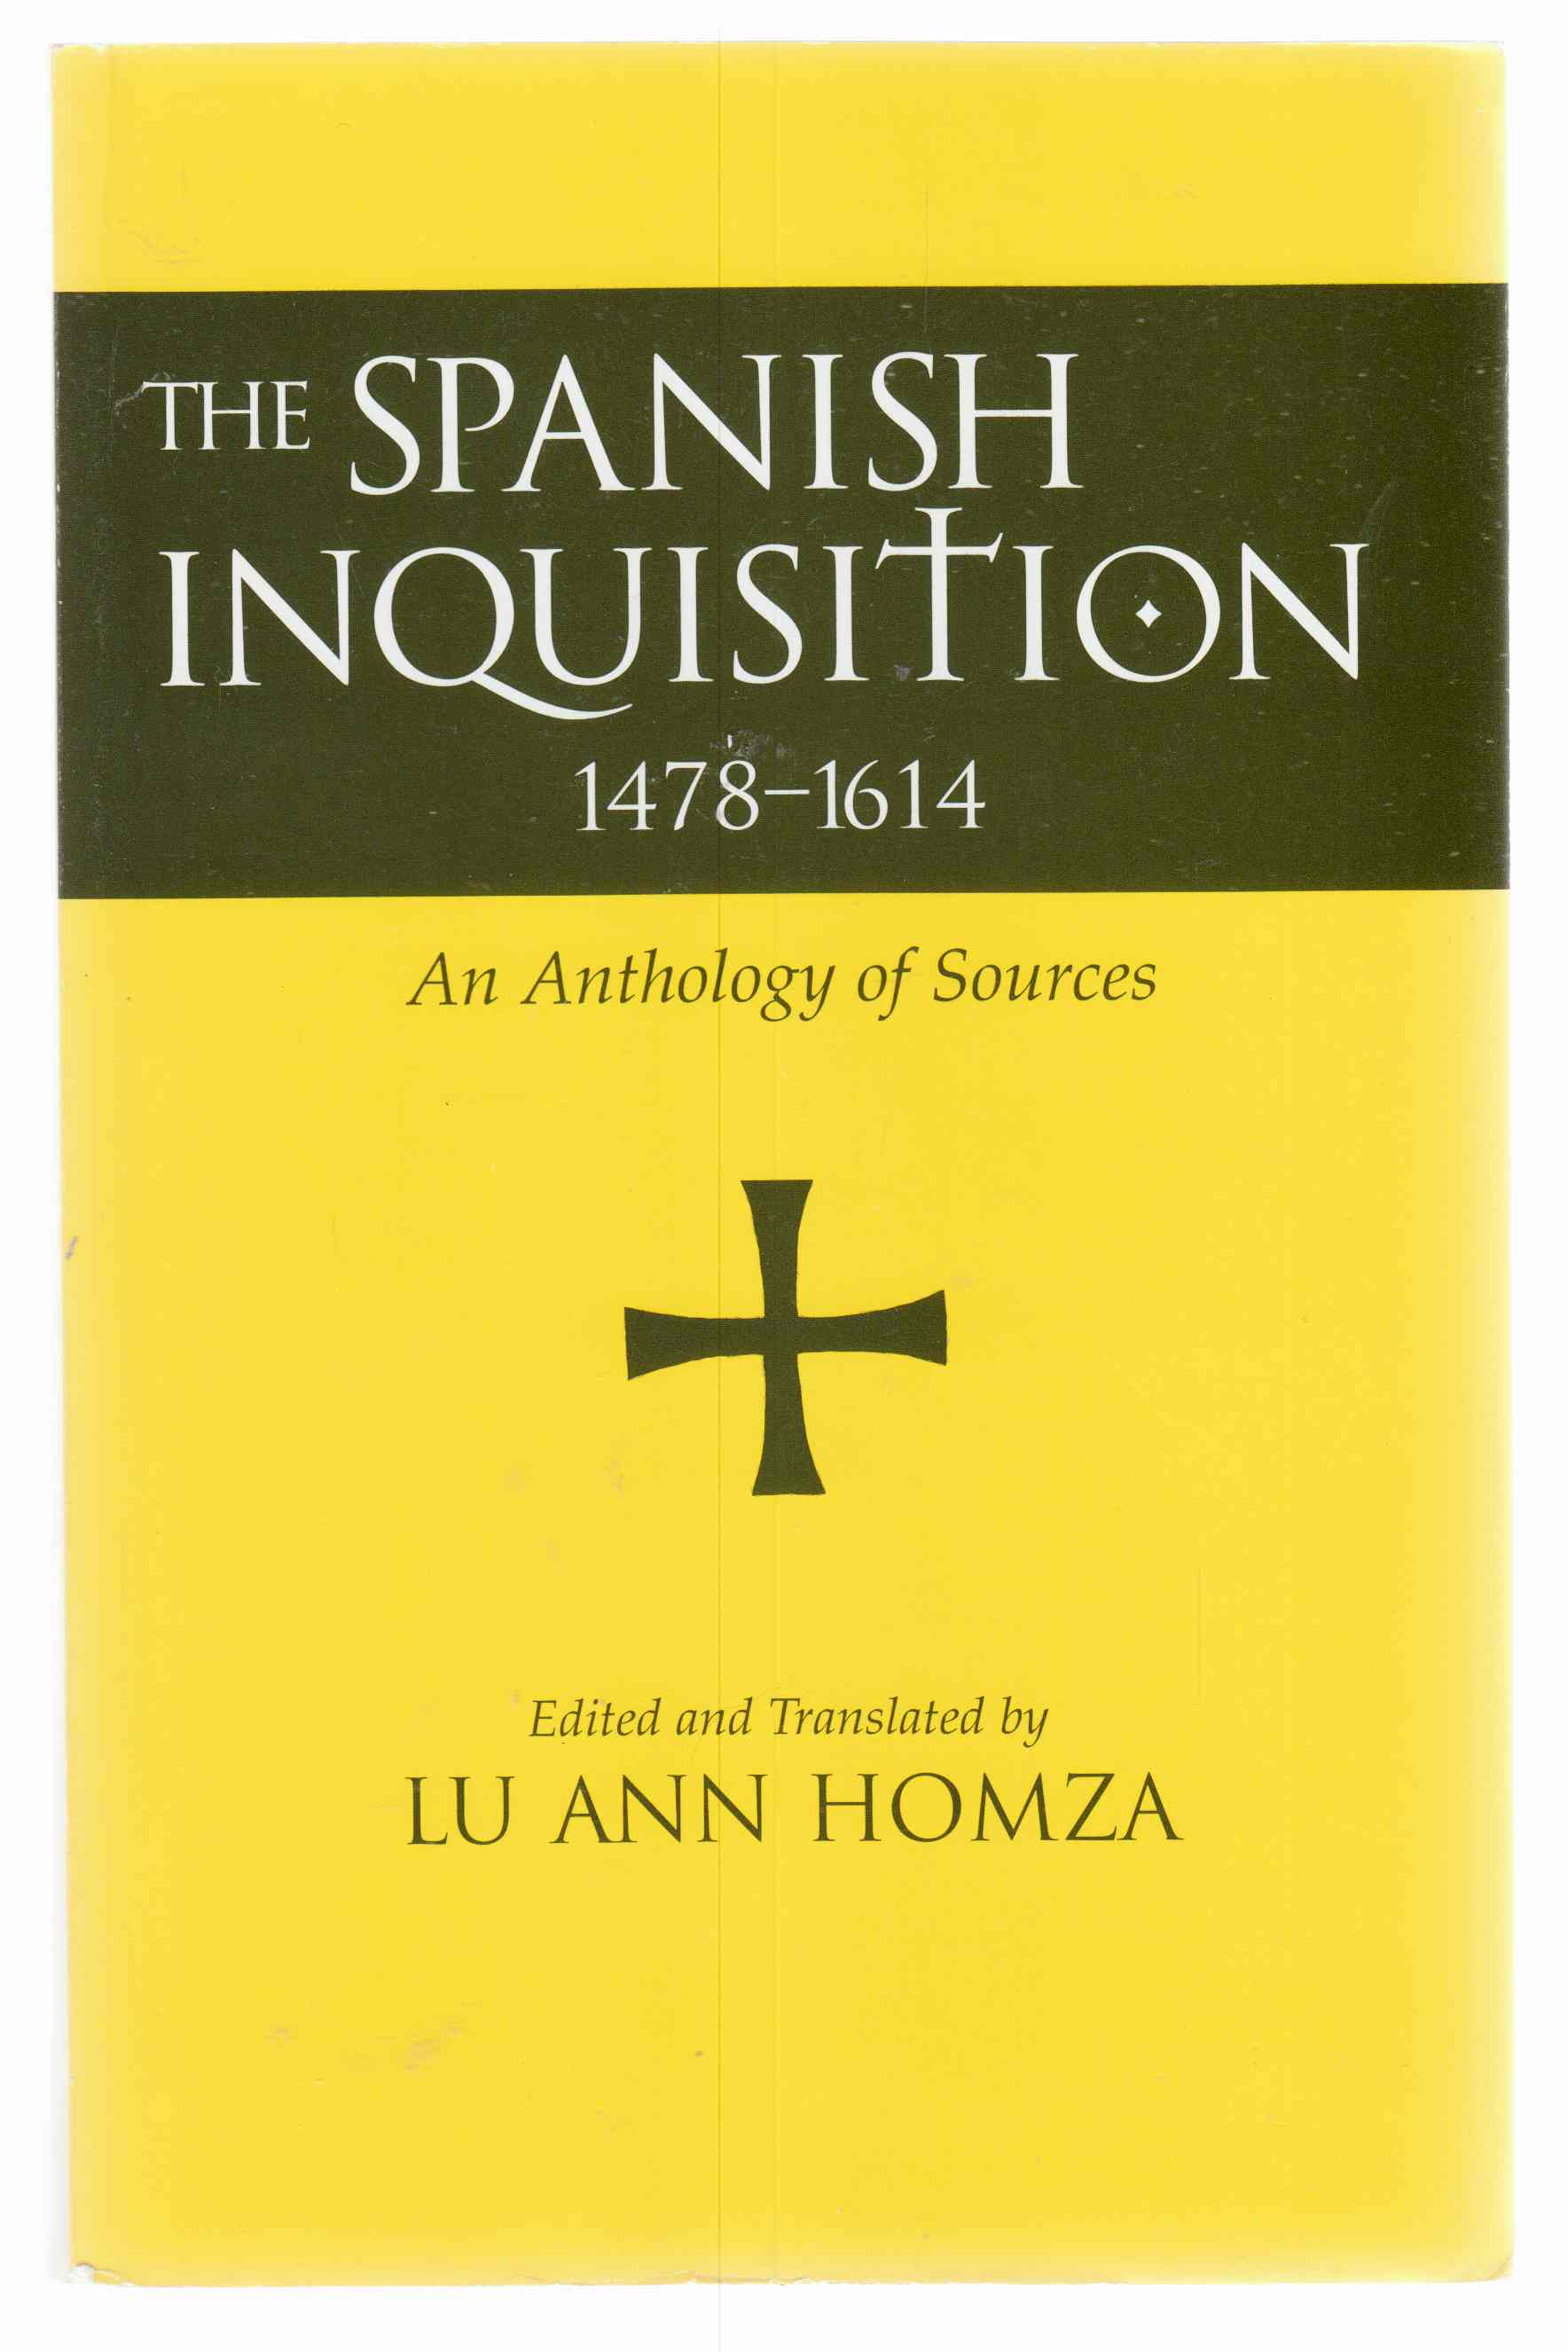 Image for Spanish Inquisition, 1478-1614 An Anthology of Sources